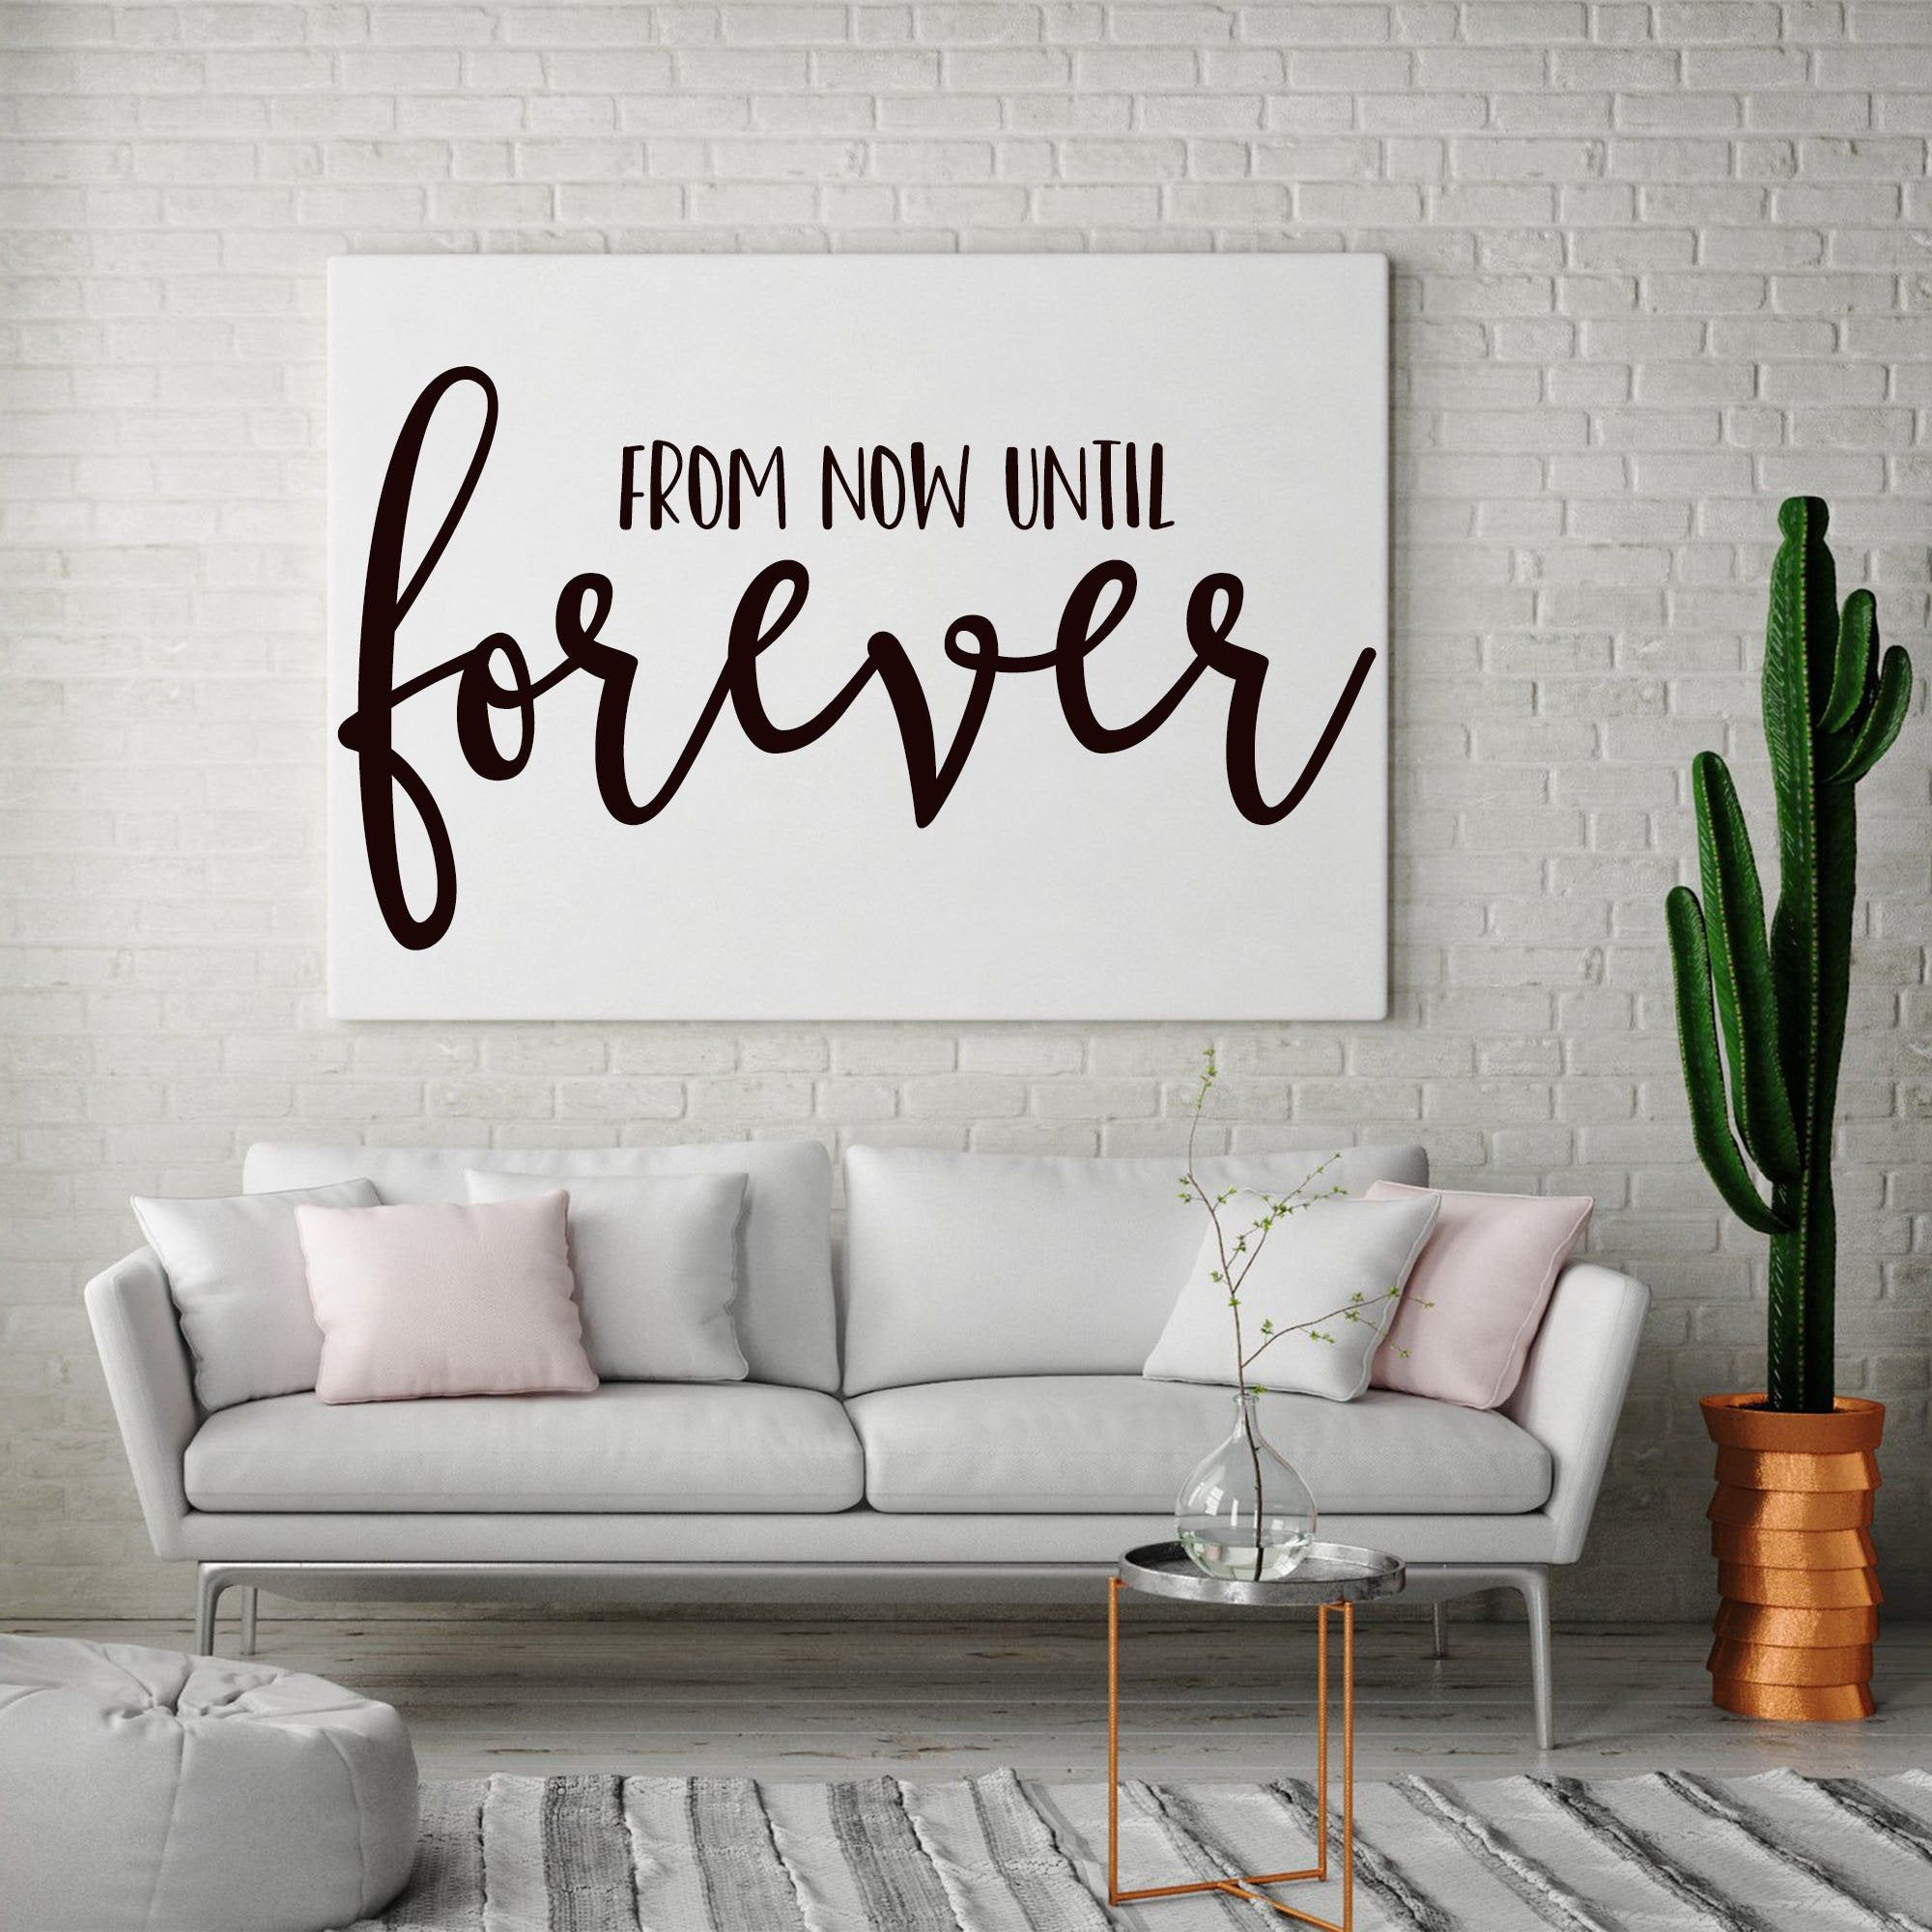 From Now Until Forever Hand Painted Canvas, Bedroom Sign